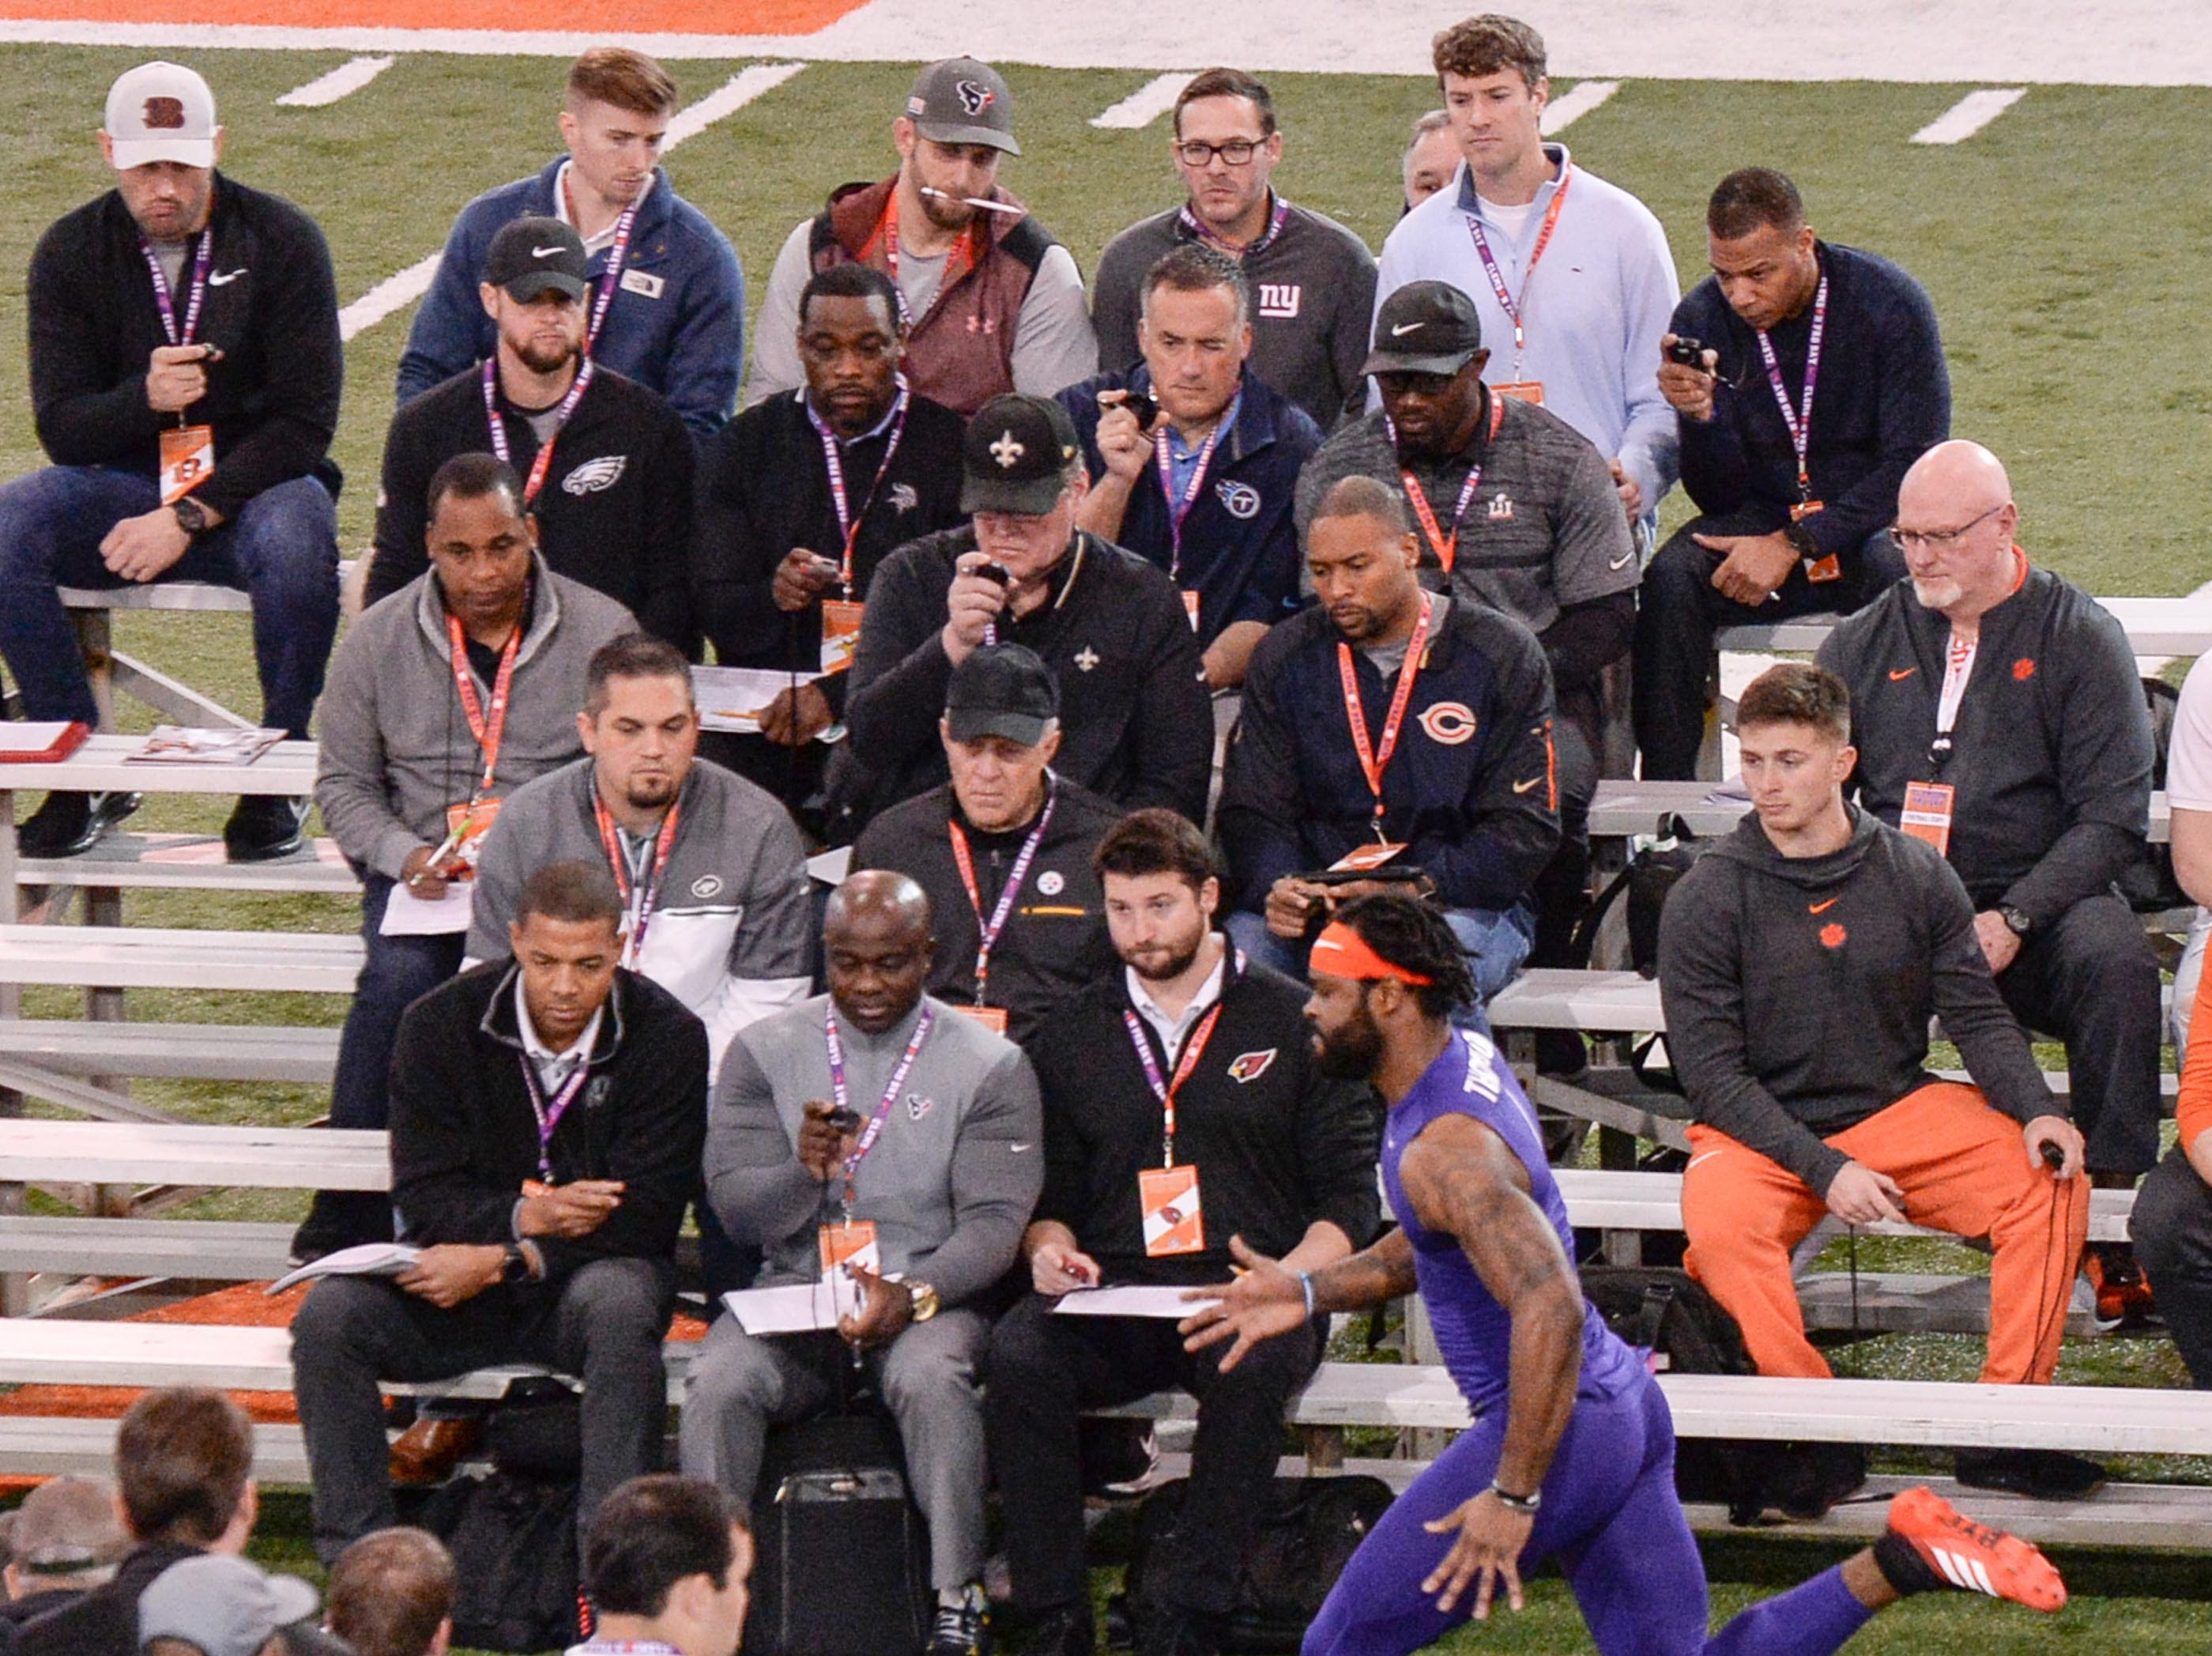 Wide receiver Trevion Thompson runs the 40-yard dash during Clemson pro day at the Poe Indoor Facility in Clemson Thursday, March 14, 2019.